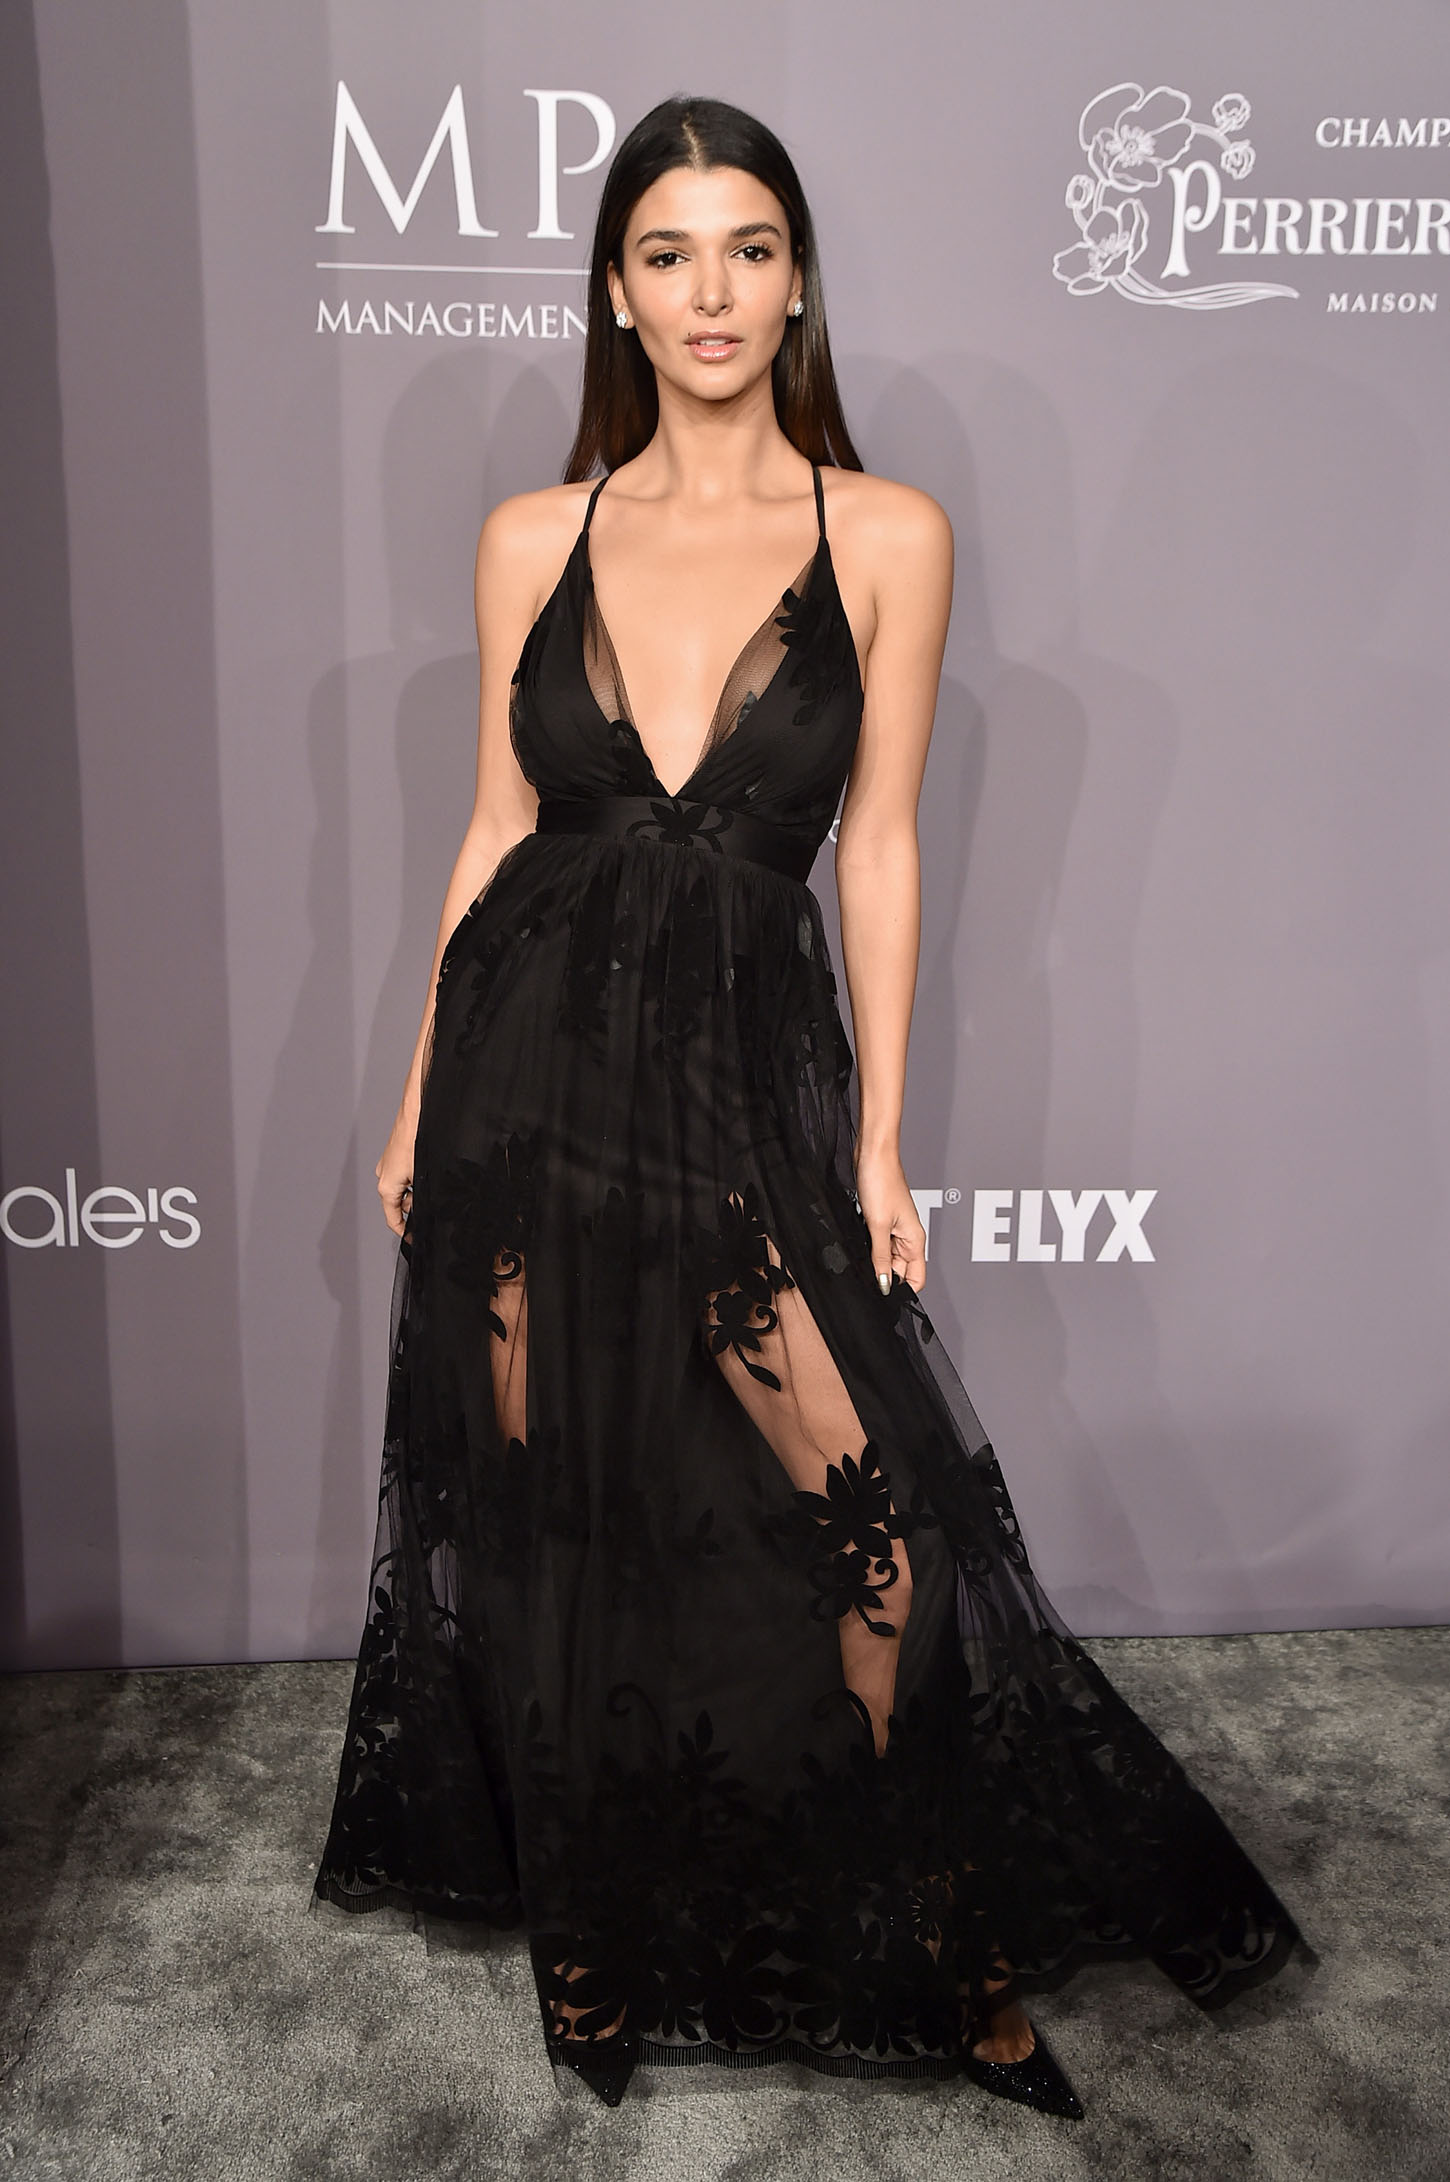 NEW YORK, NY - FEBRUARY 07:  Model Pamela Lima attends the 2018 amfAR Gala New York at Cipriani Wall Street on February 7, 2018 in New York City.  (Photo by Theo Wargo/Getty Images)